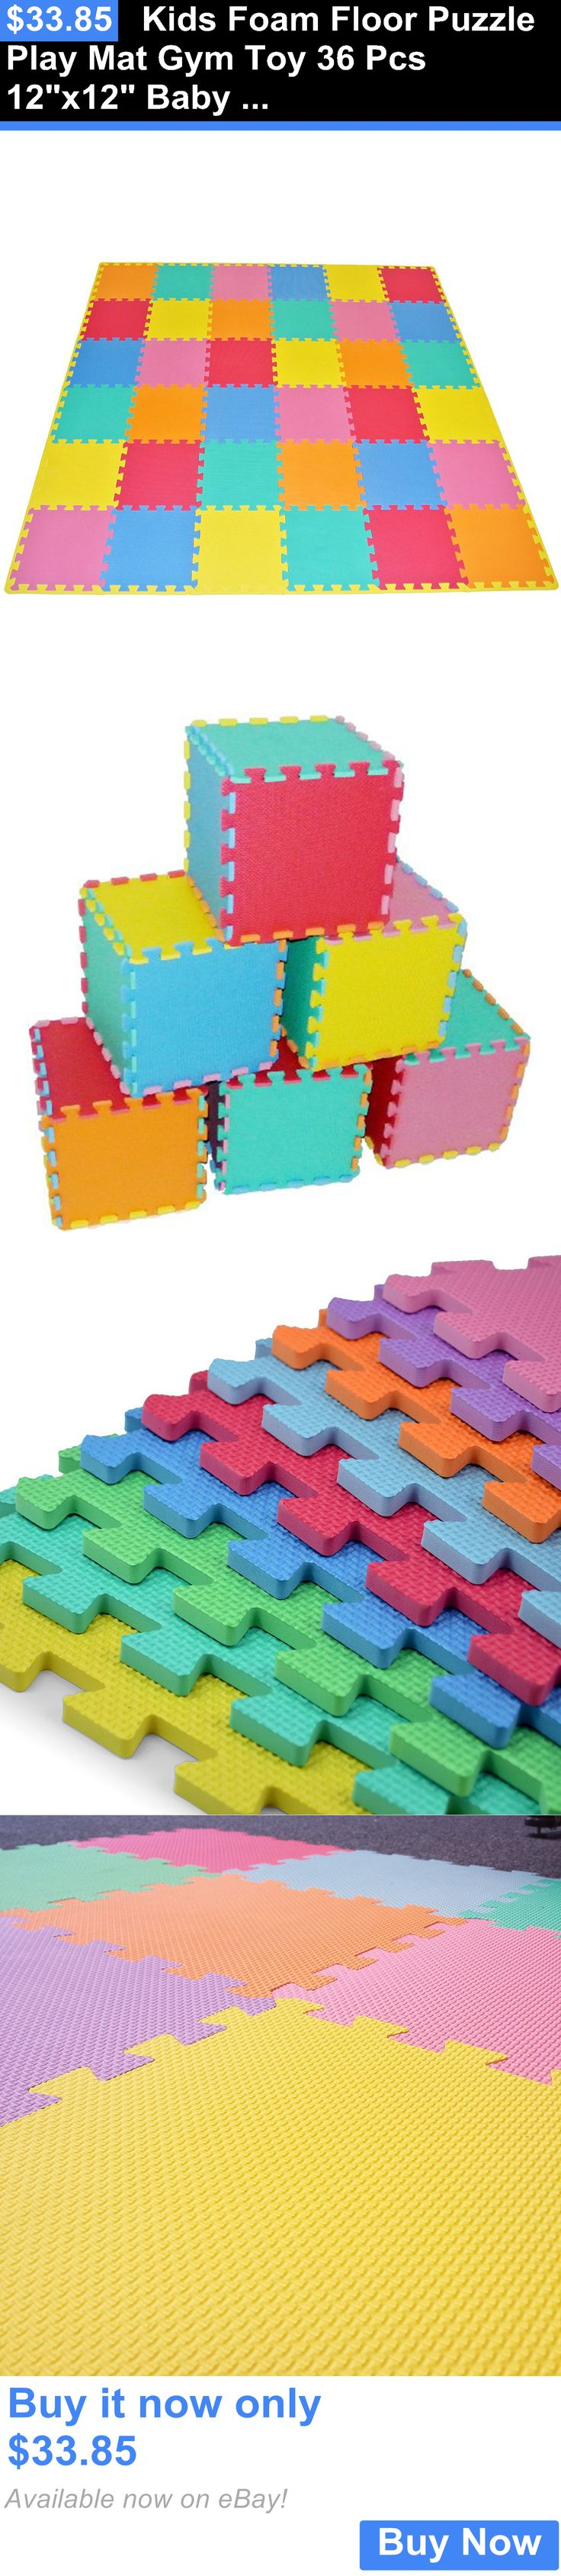 baby kid stuff: Kids Foam Floor Puzzle Play Mat Gym Toy 36 Pcs 12X12 Baby Toddler Soft Playmat BUY IT NOW ONLY: $33.85